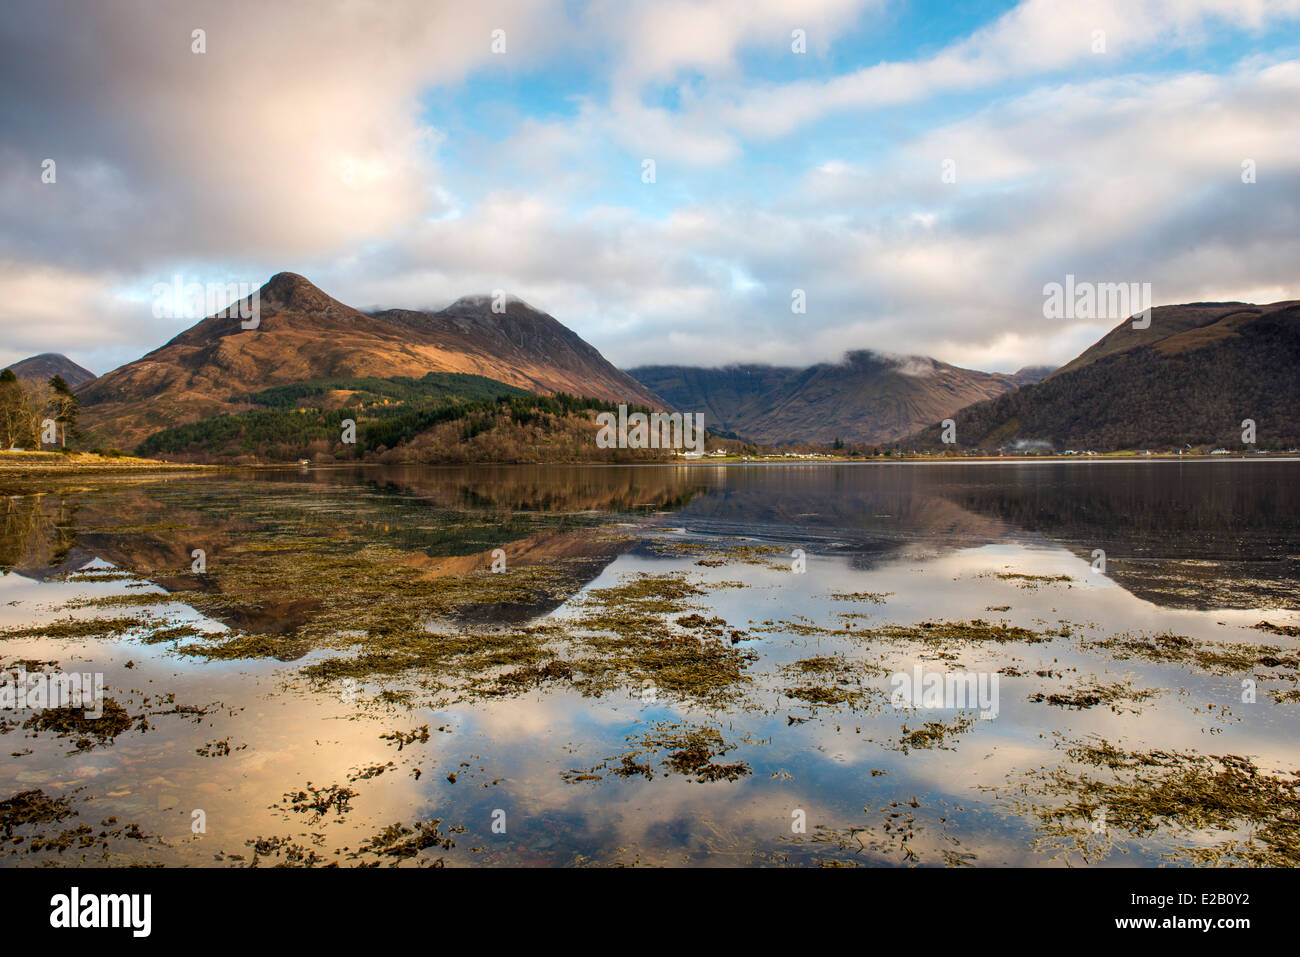 Reflections on Loch Leven, Highland Scotland UK - Stock Image